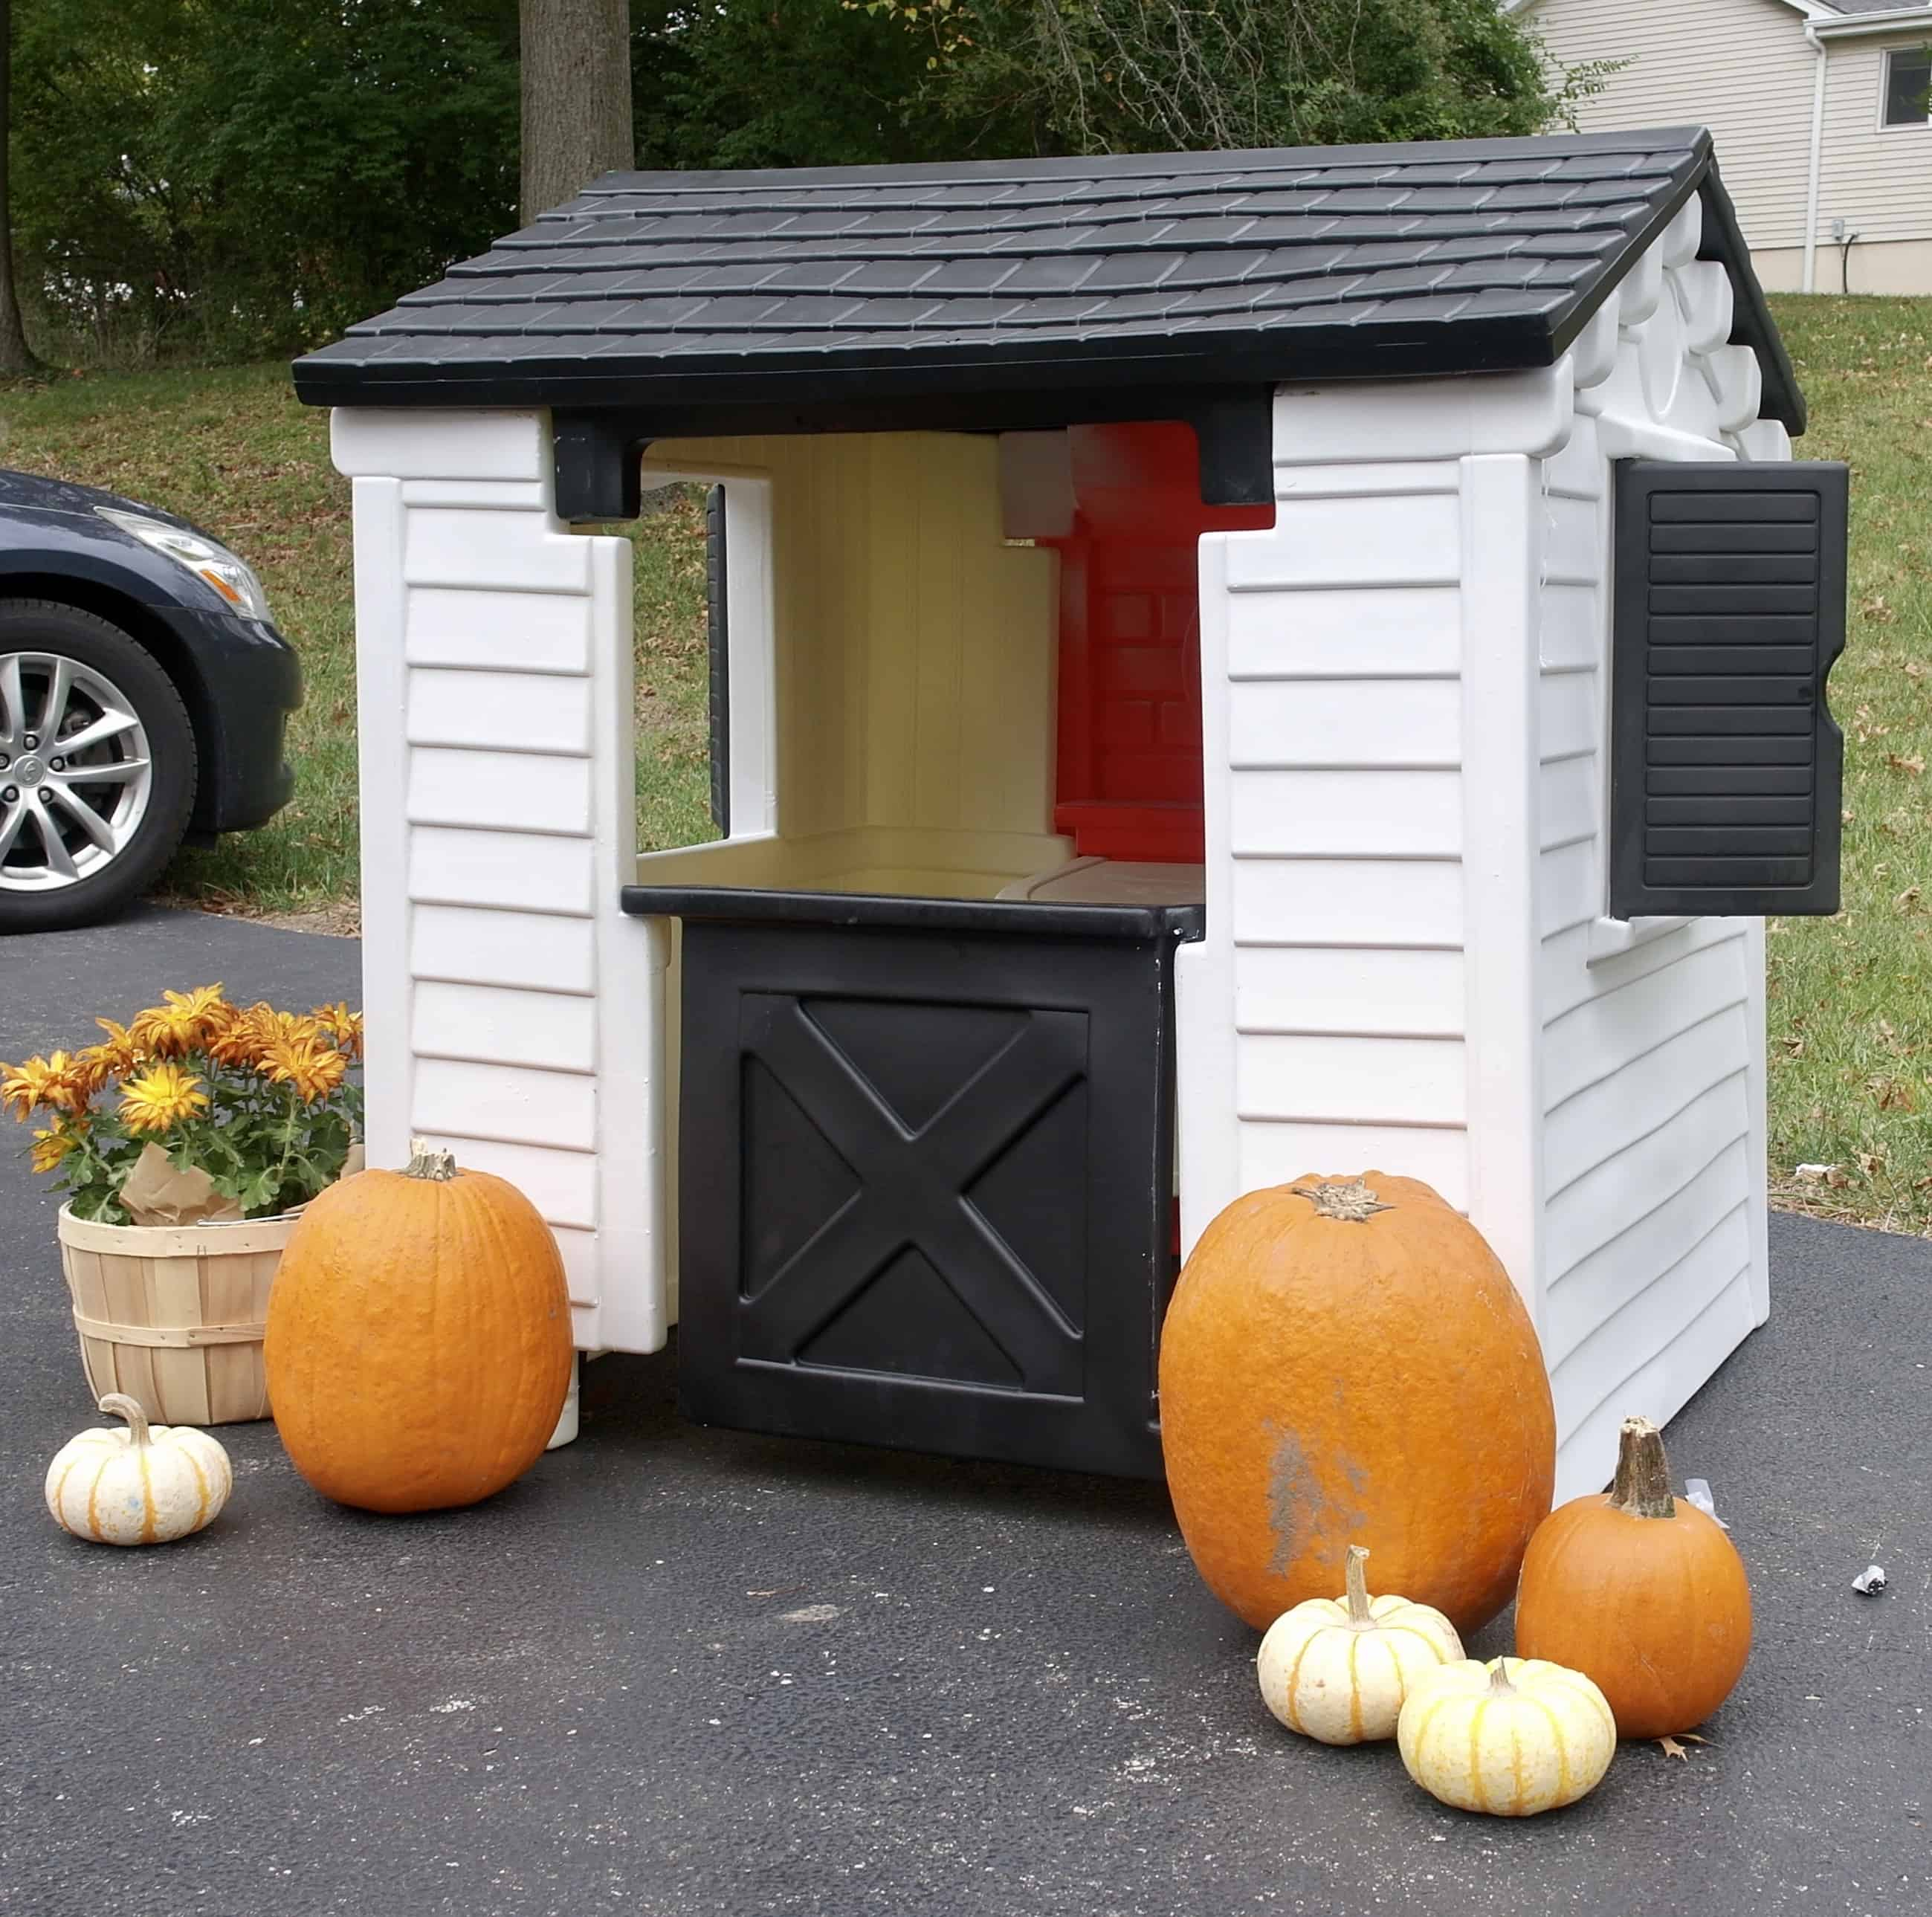 Playhouse Makeover - www.arinsolangeathome.com